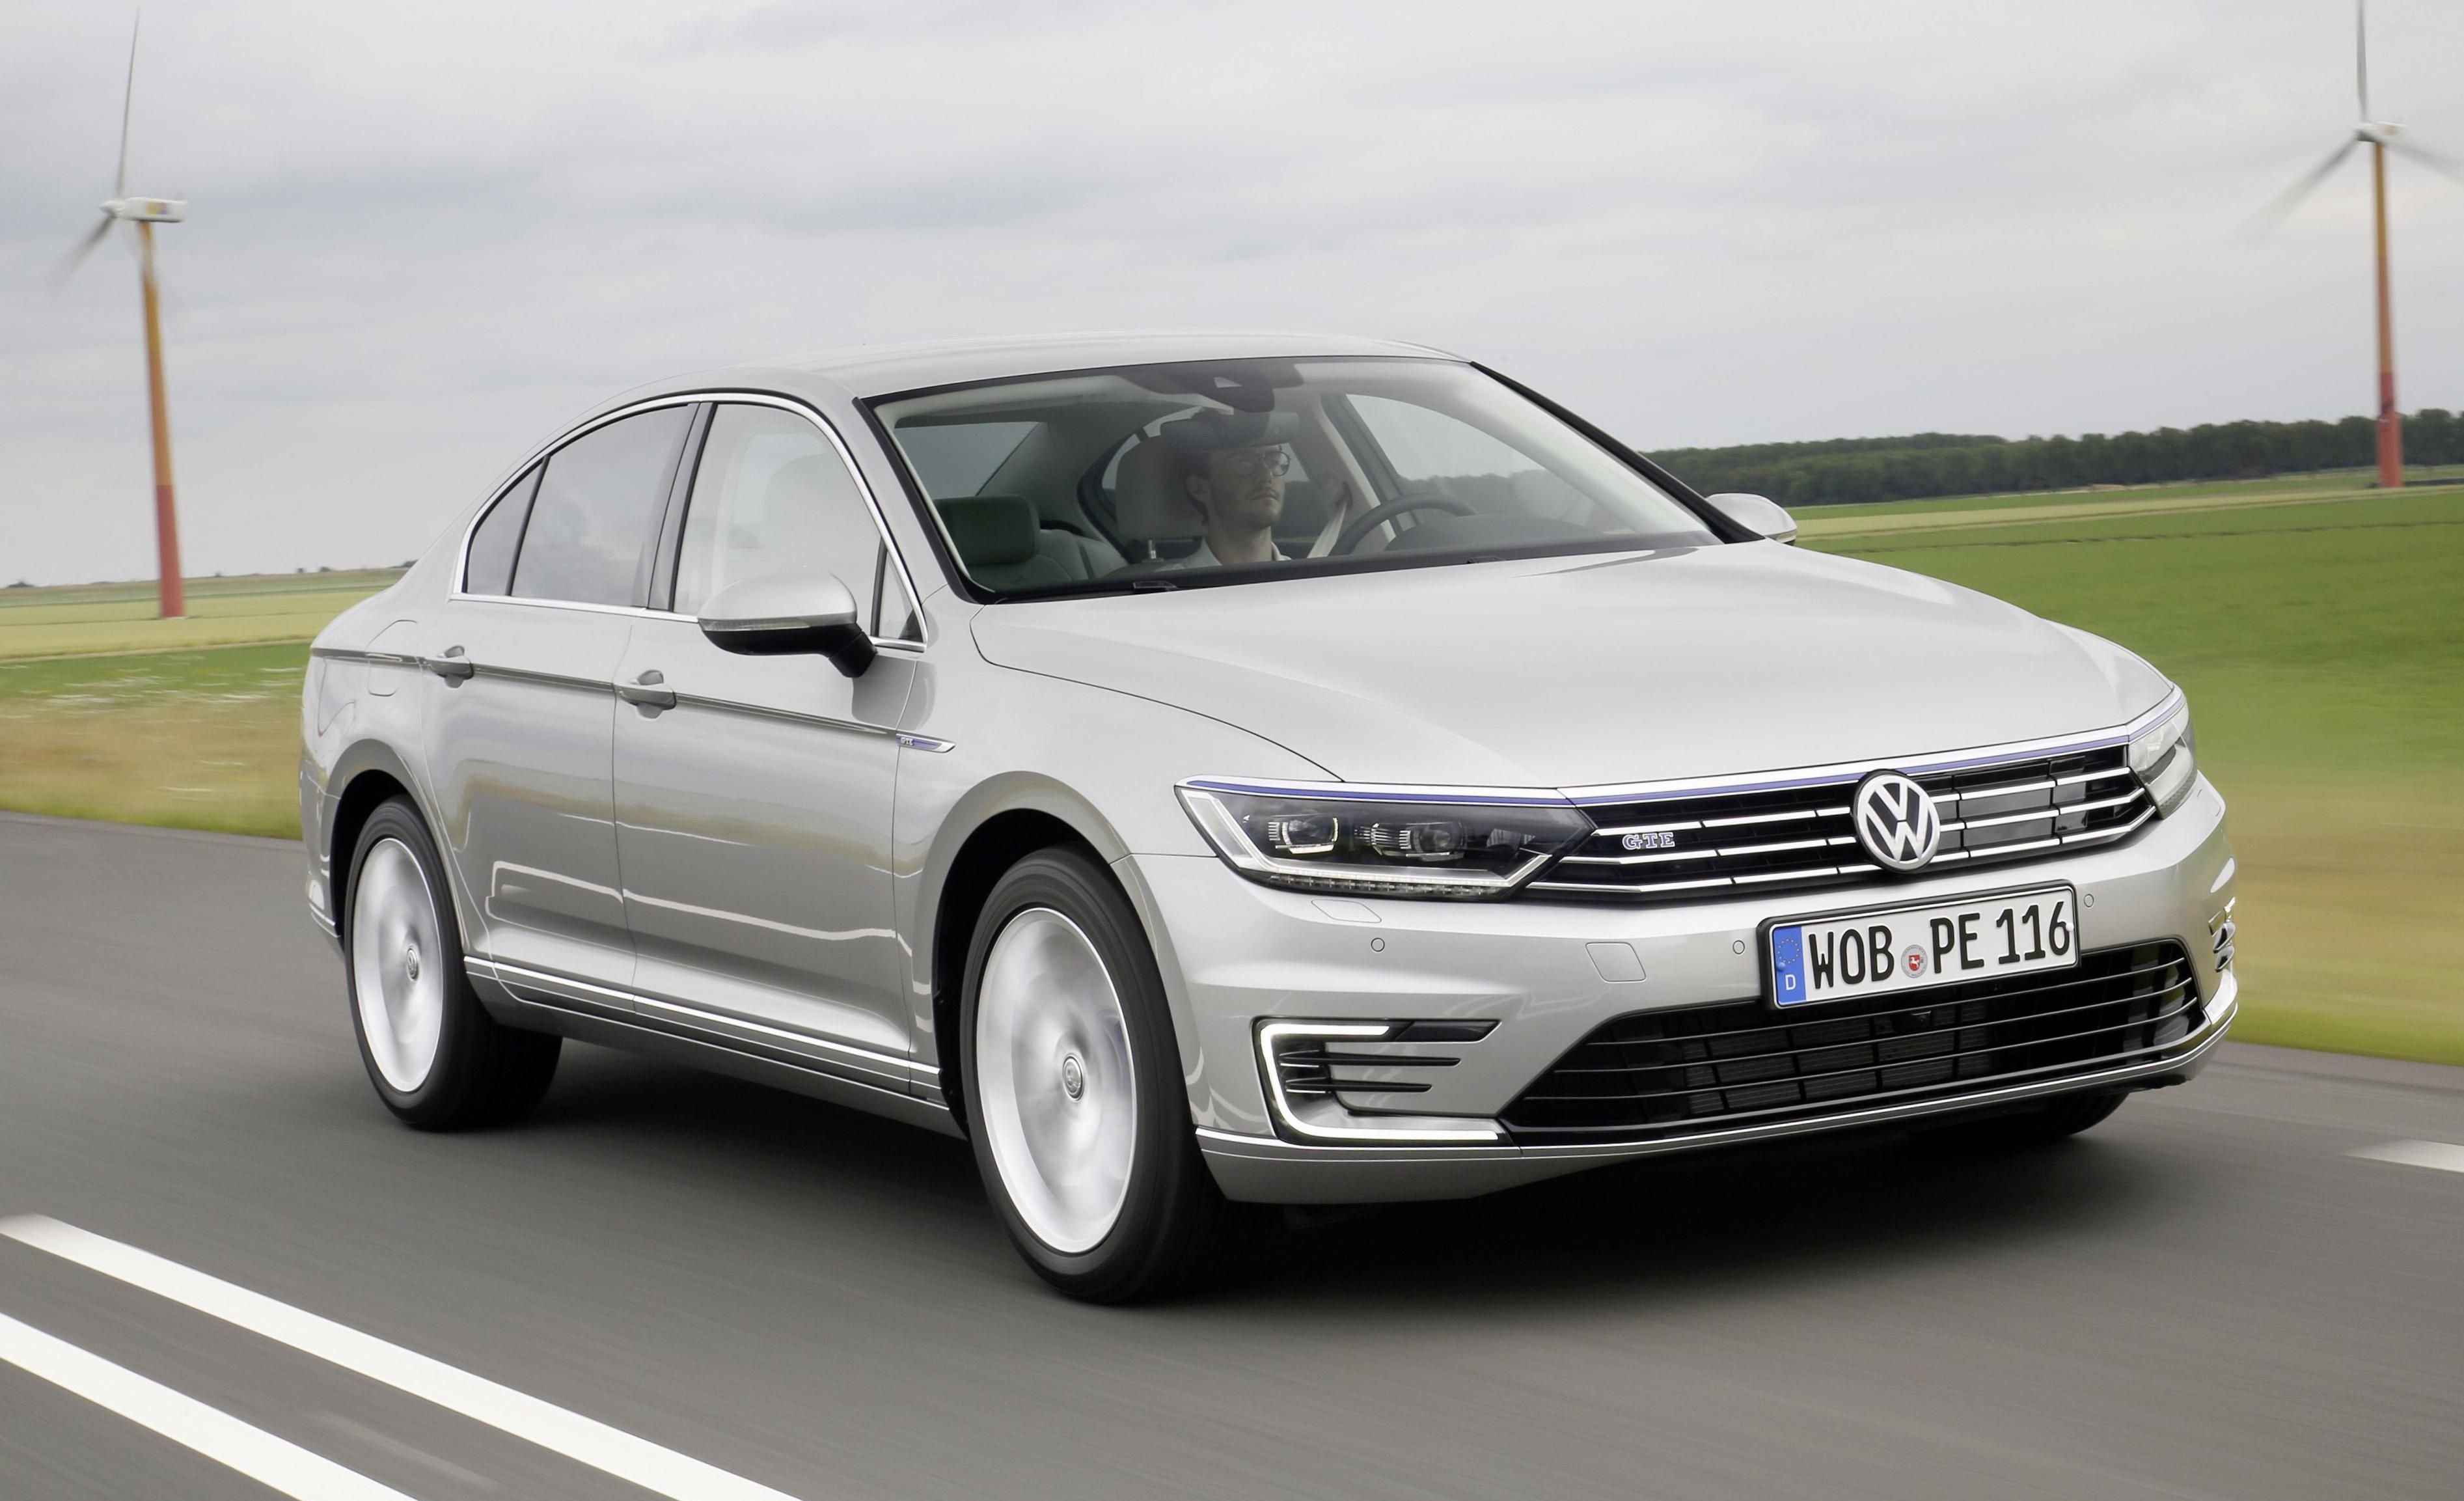 vehicle passat range edition volkswagen golf the upgrades first blog vw of leasing among gt lease